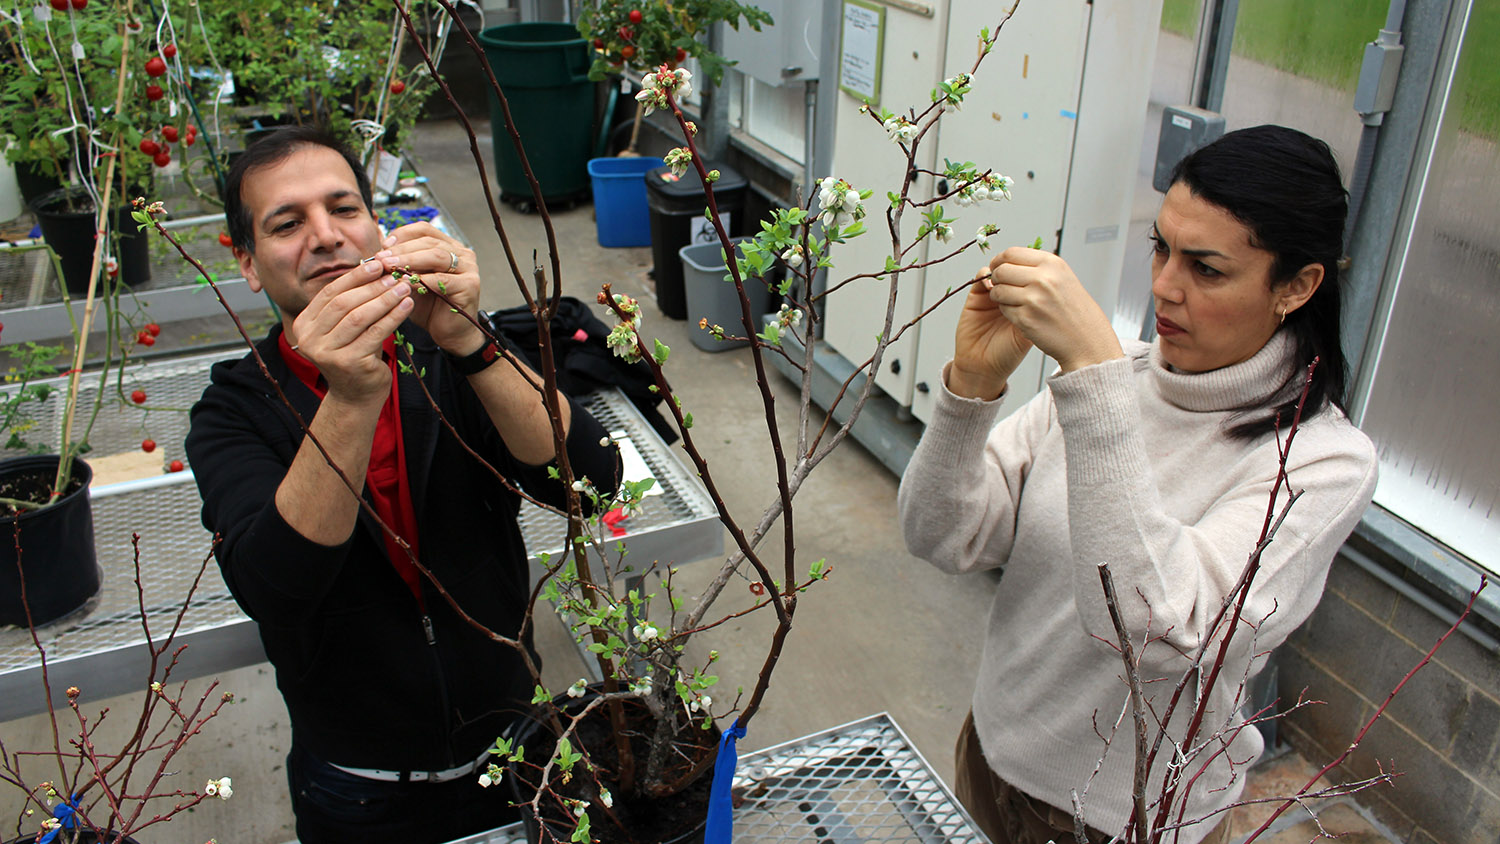 Two scientists in greenhouse pollinating blueberry plants